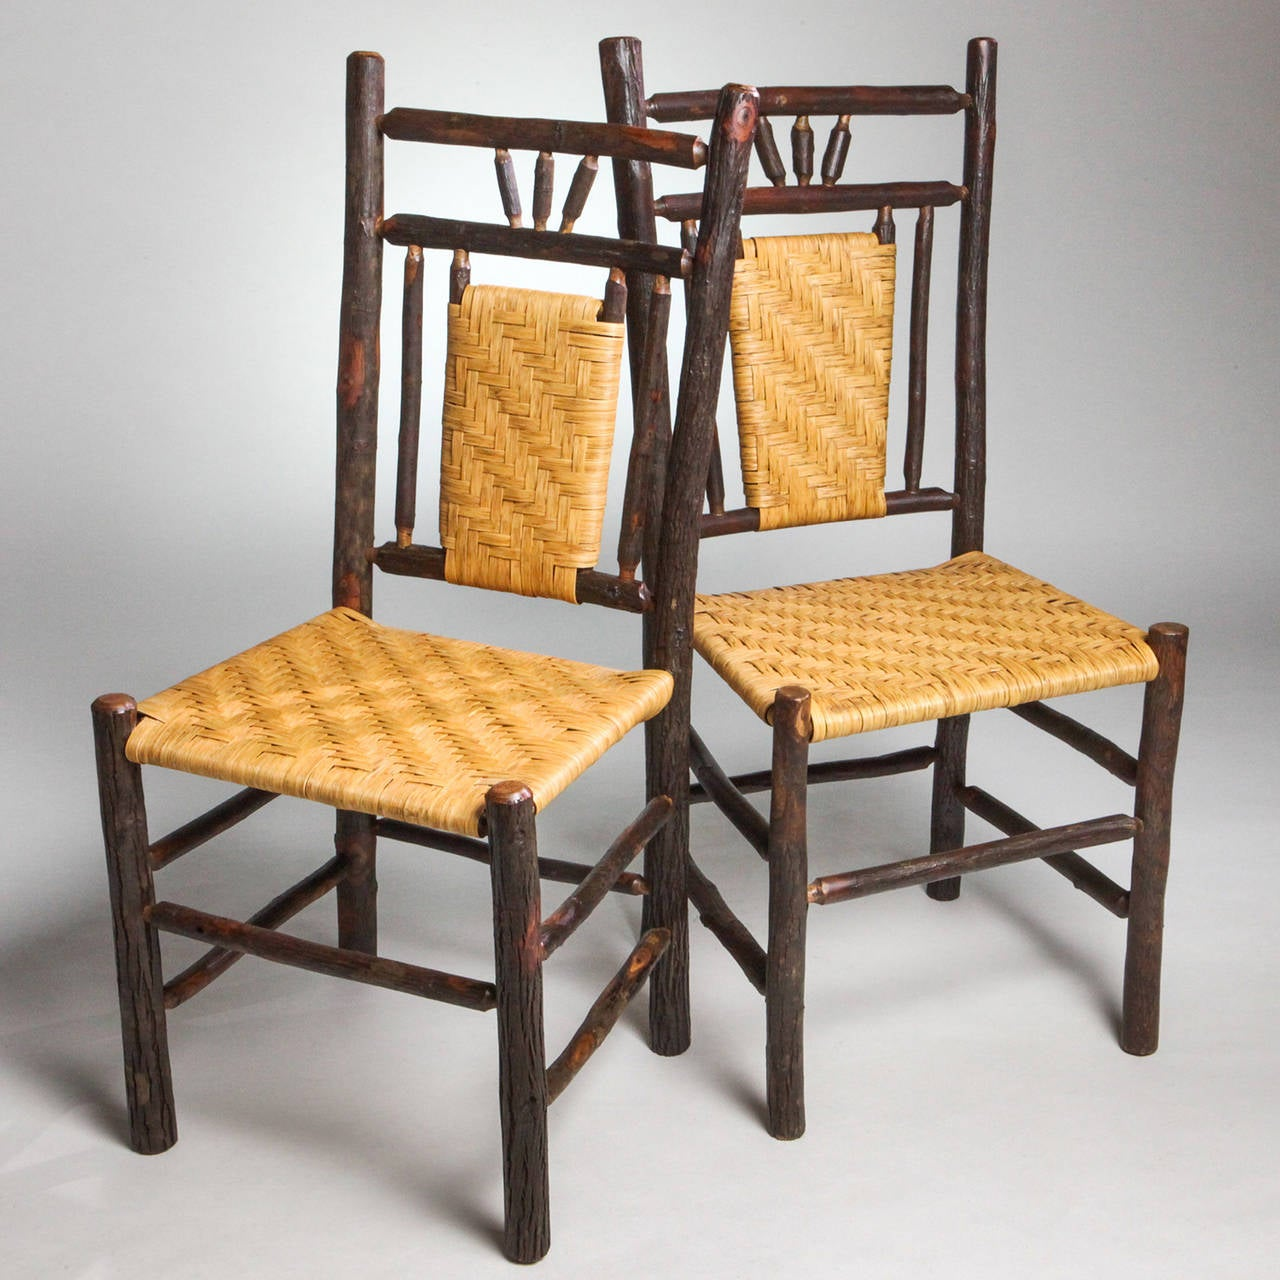 20th Century Adirondack Woven Seat Chair For Sale